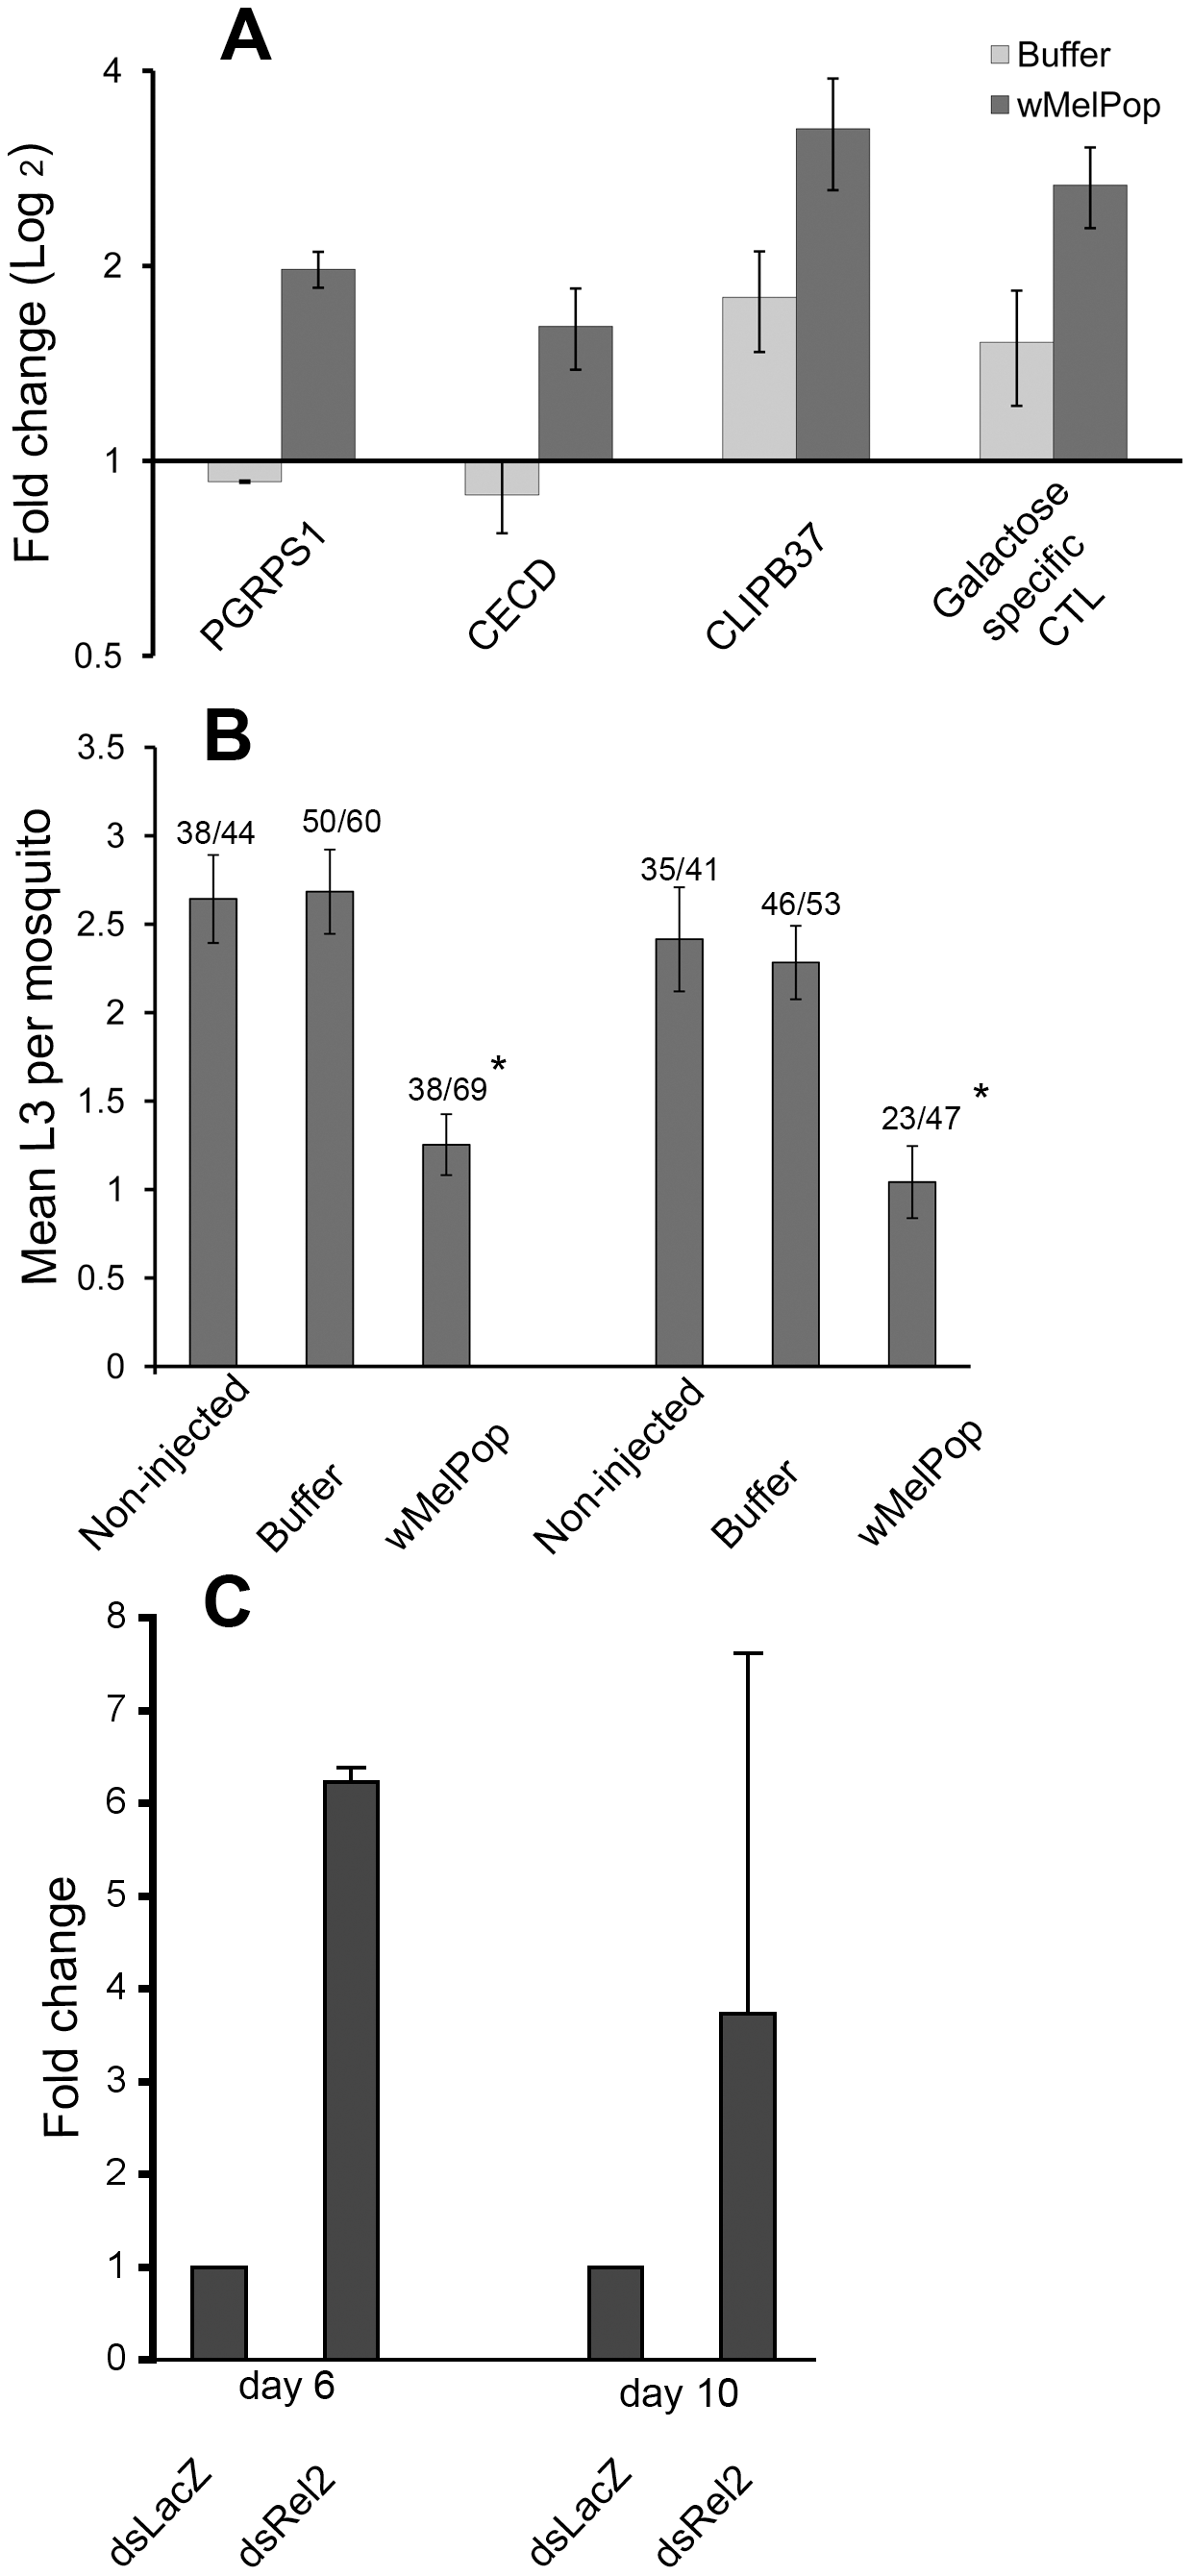 Immune gene expression and challenges with <i>Brugia pahangi</i> in <i>Ae. aegypti</i> somatically infected with <i>w</i>MelPop, and effects of immune knockdown on <i>Wolbachia</i> density.